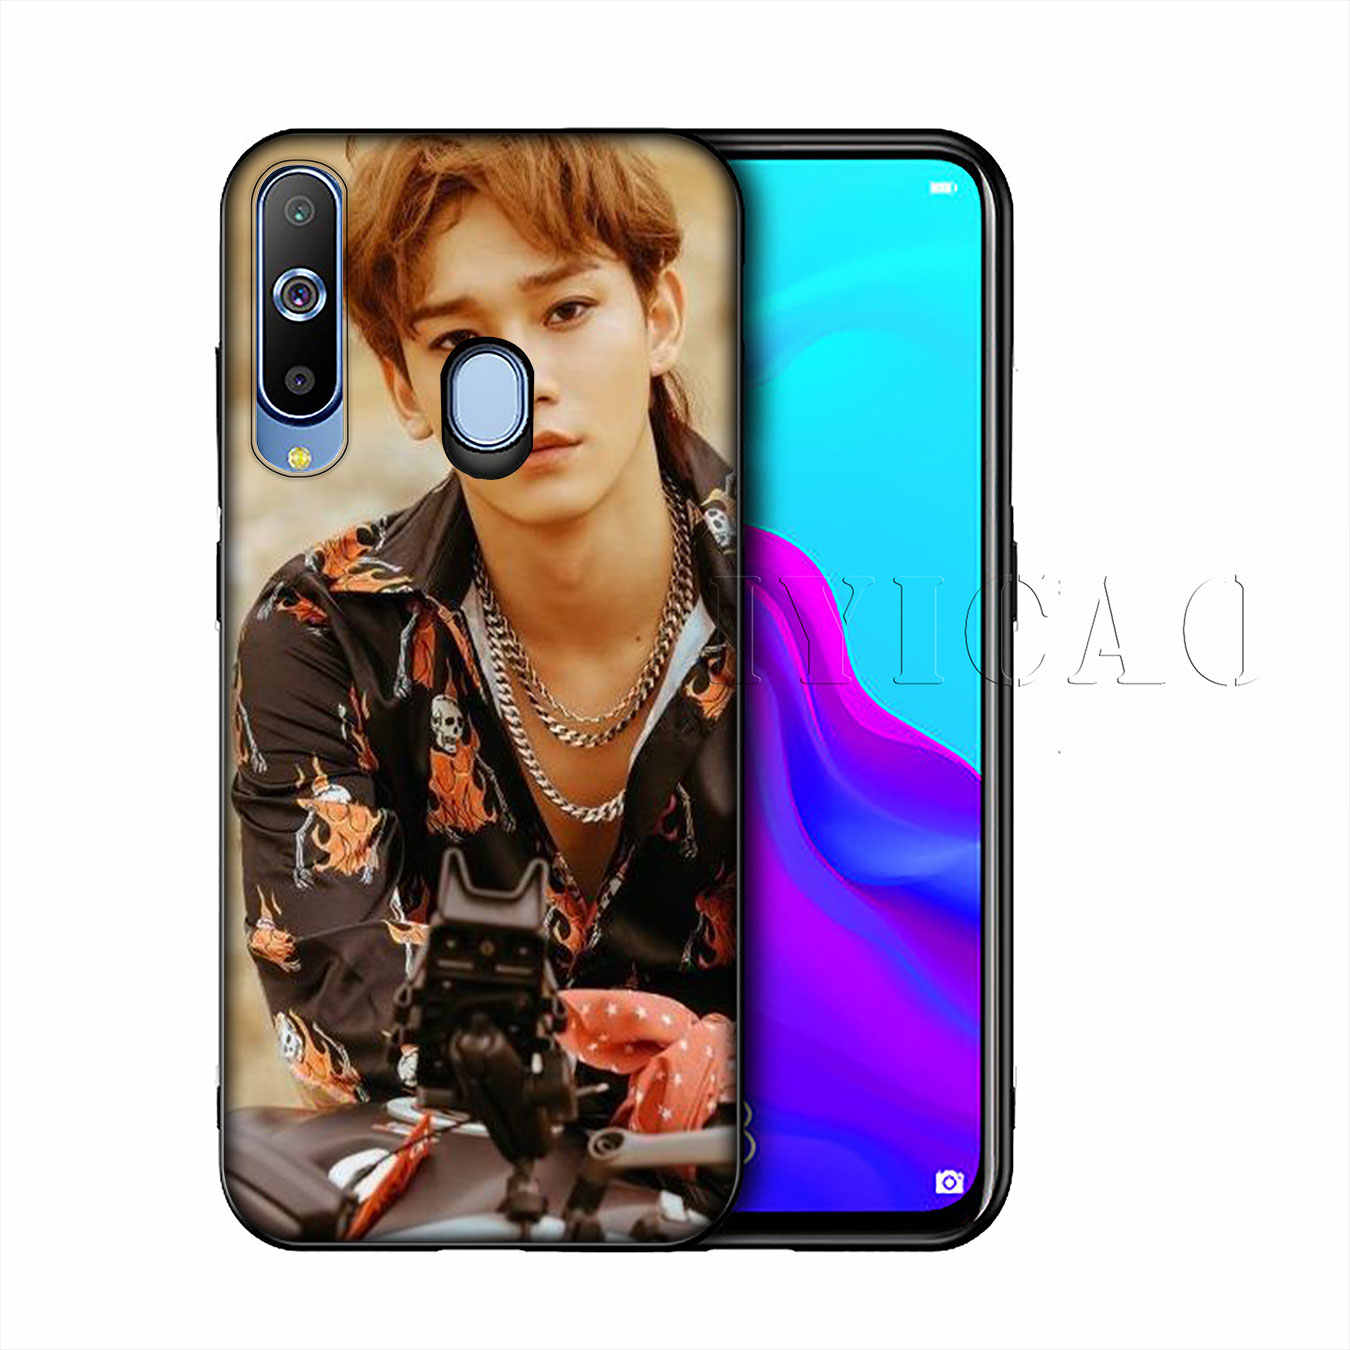 EXO 5 Do not Spoil My Tempo Soft Silicone Cover for Samsung Galaxy Note 10 Plus A50s A40s A30s A20s A10s Case